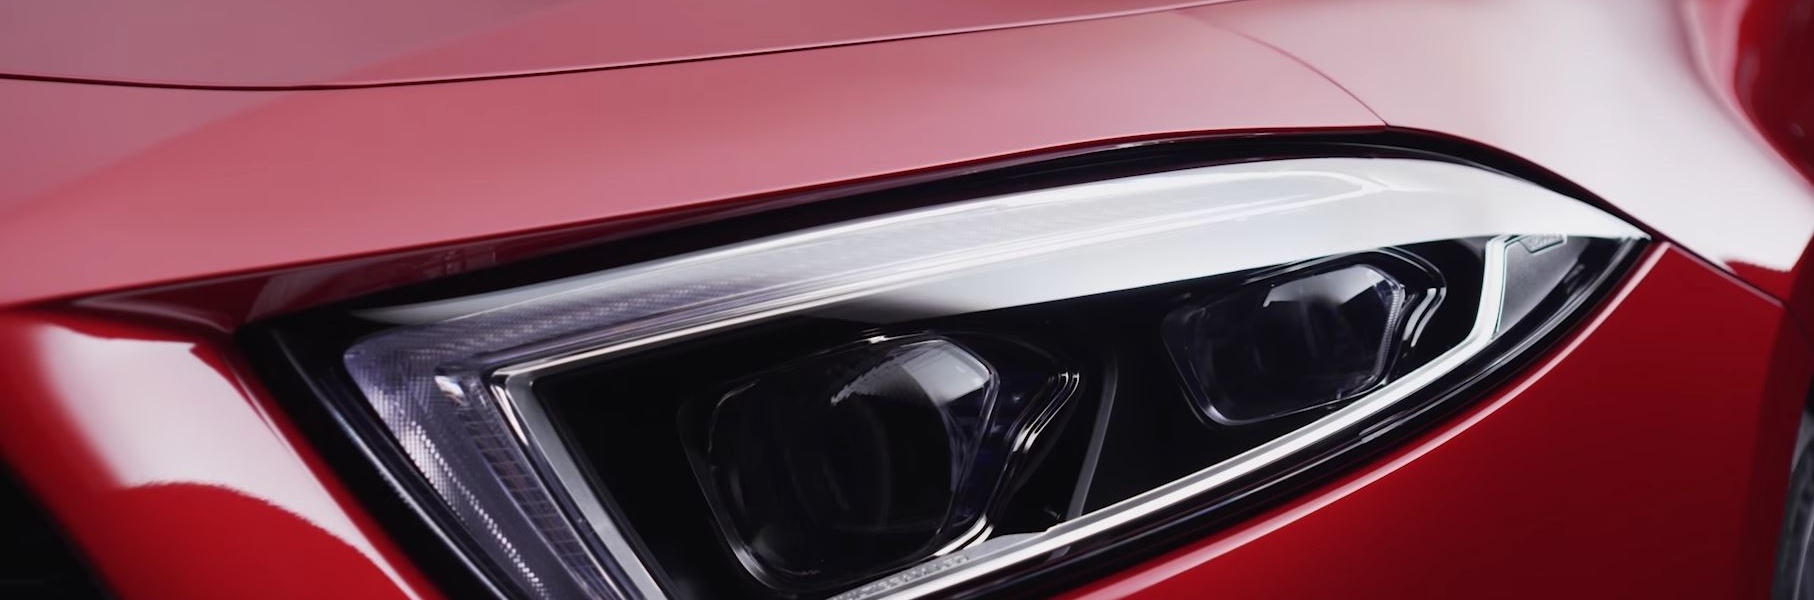 mercedes-cls-class-teaser-video-shows-new-headlights-and-taillights-121912_1.jpg